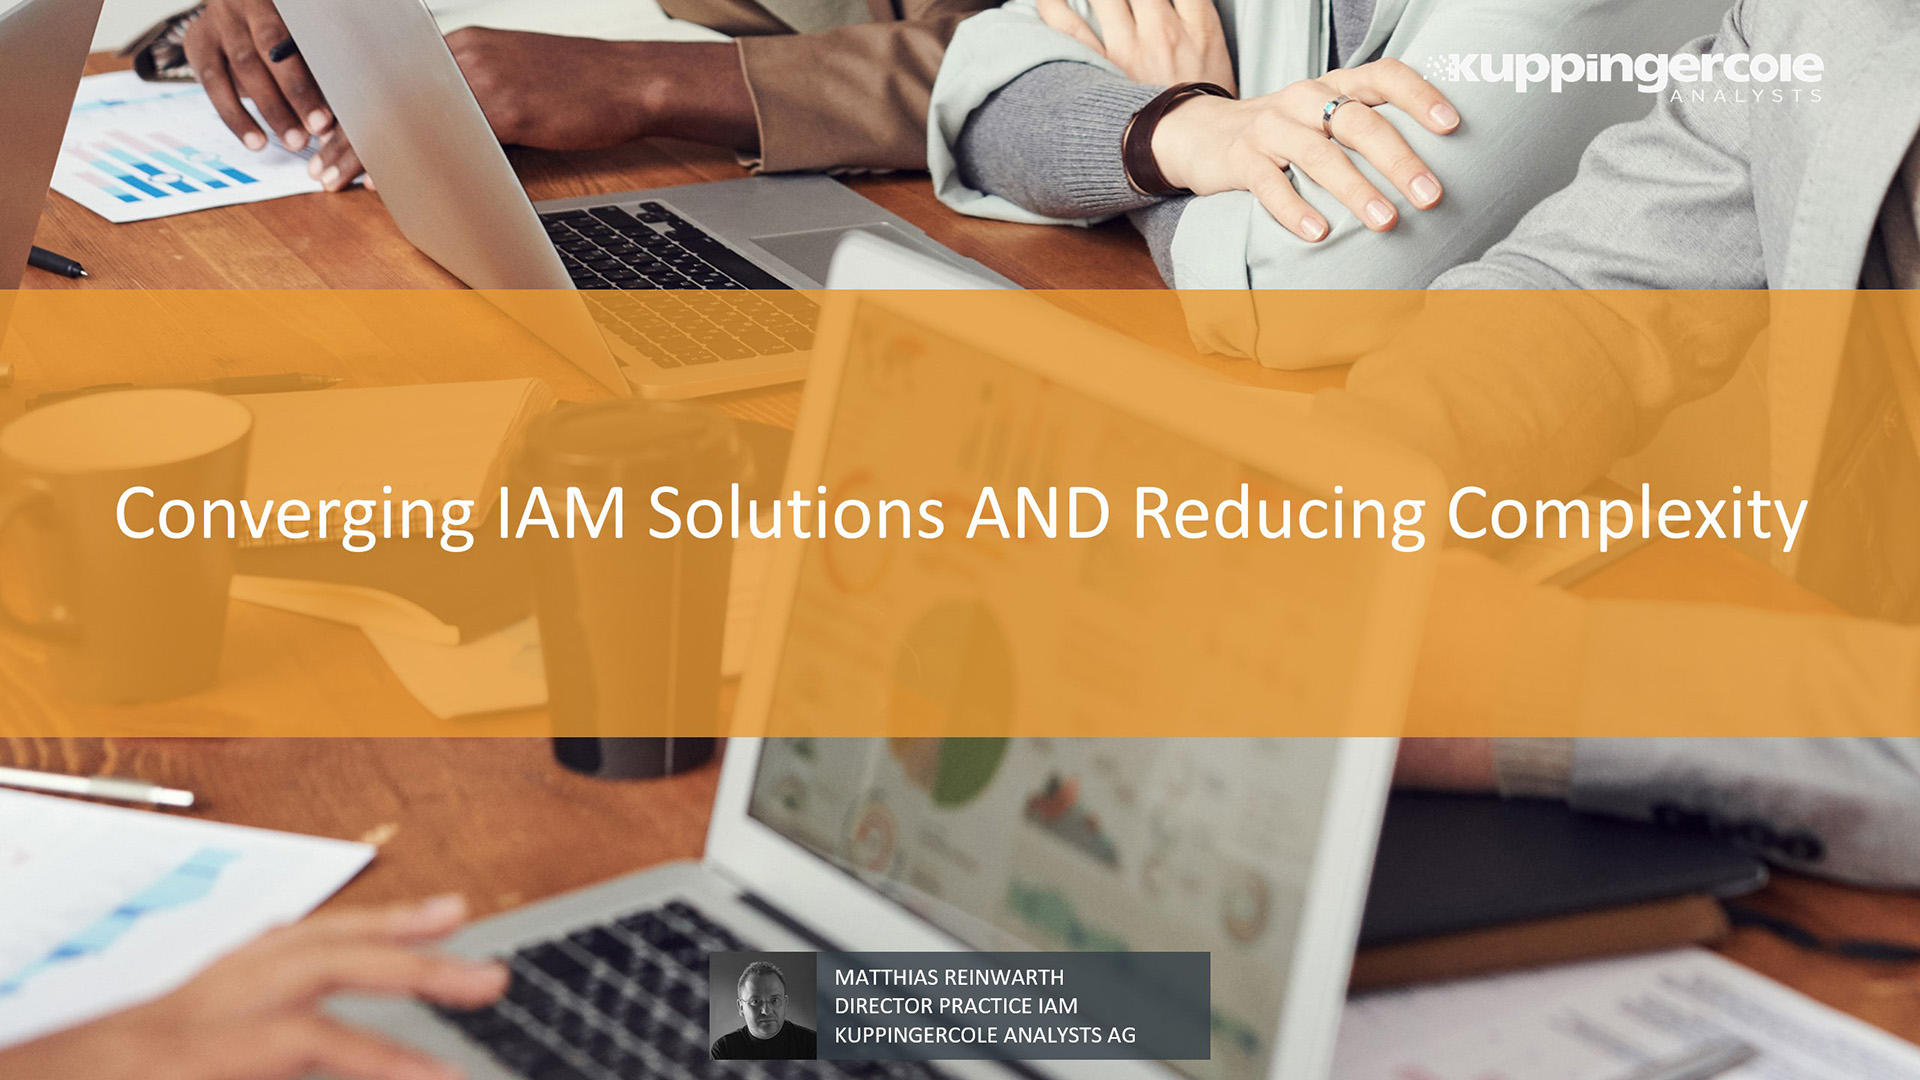 Converging IAM Solutions AND Reducing Complexity